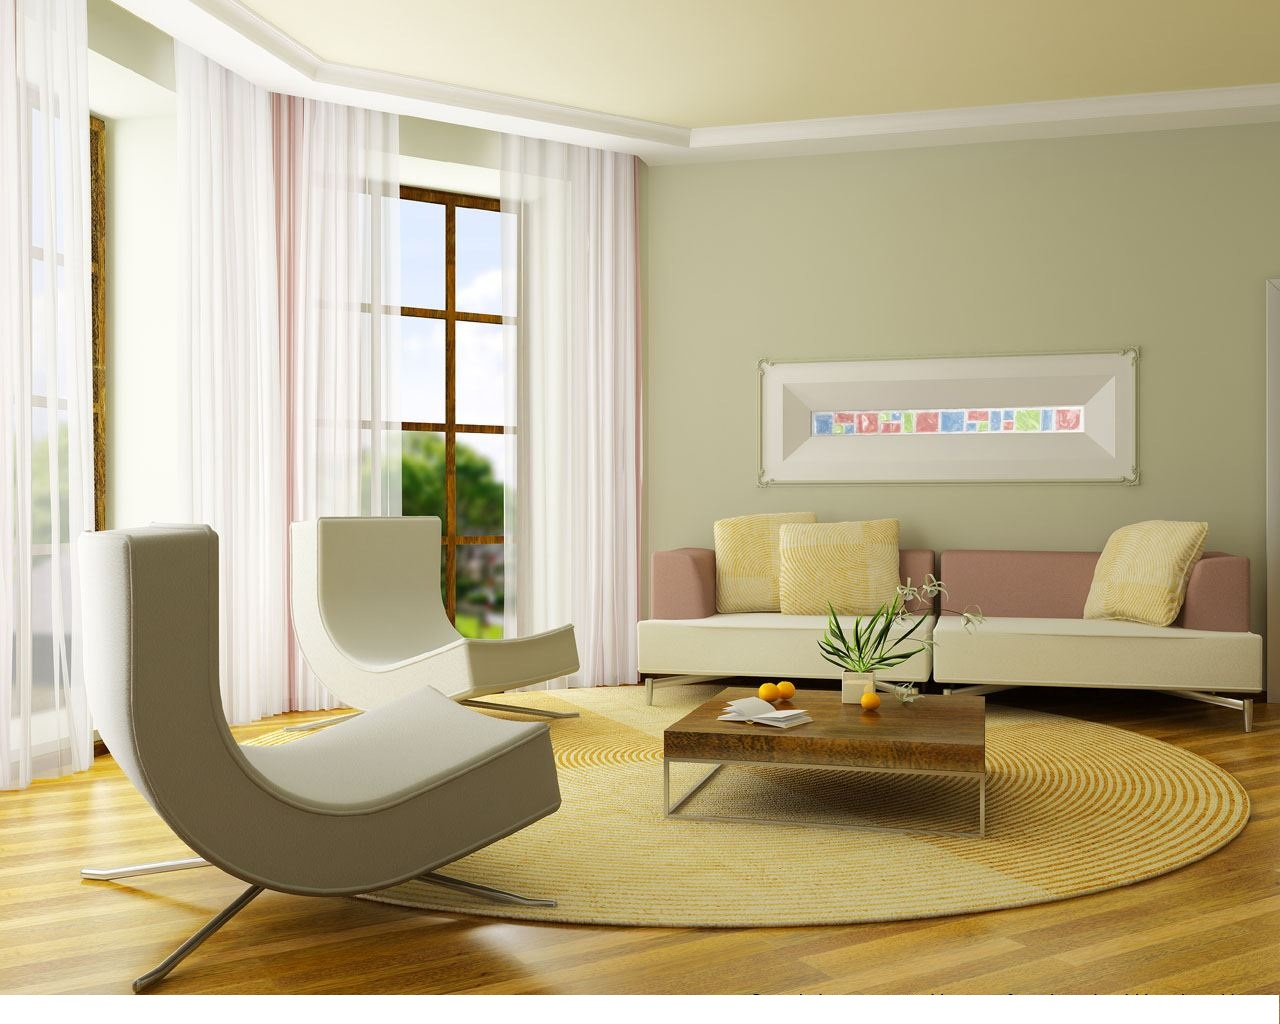 Living Room Modern Living Room Colors quality red color pu leather living room furniture modern sofa colors paint colors